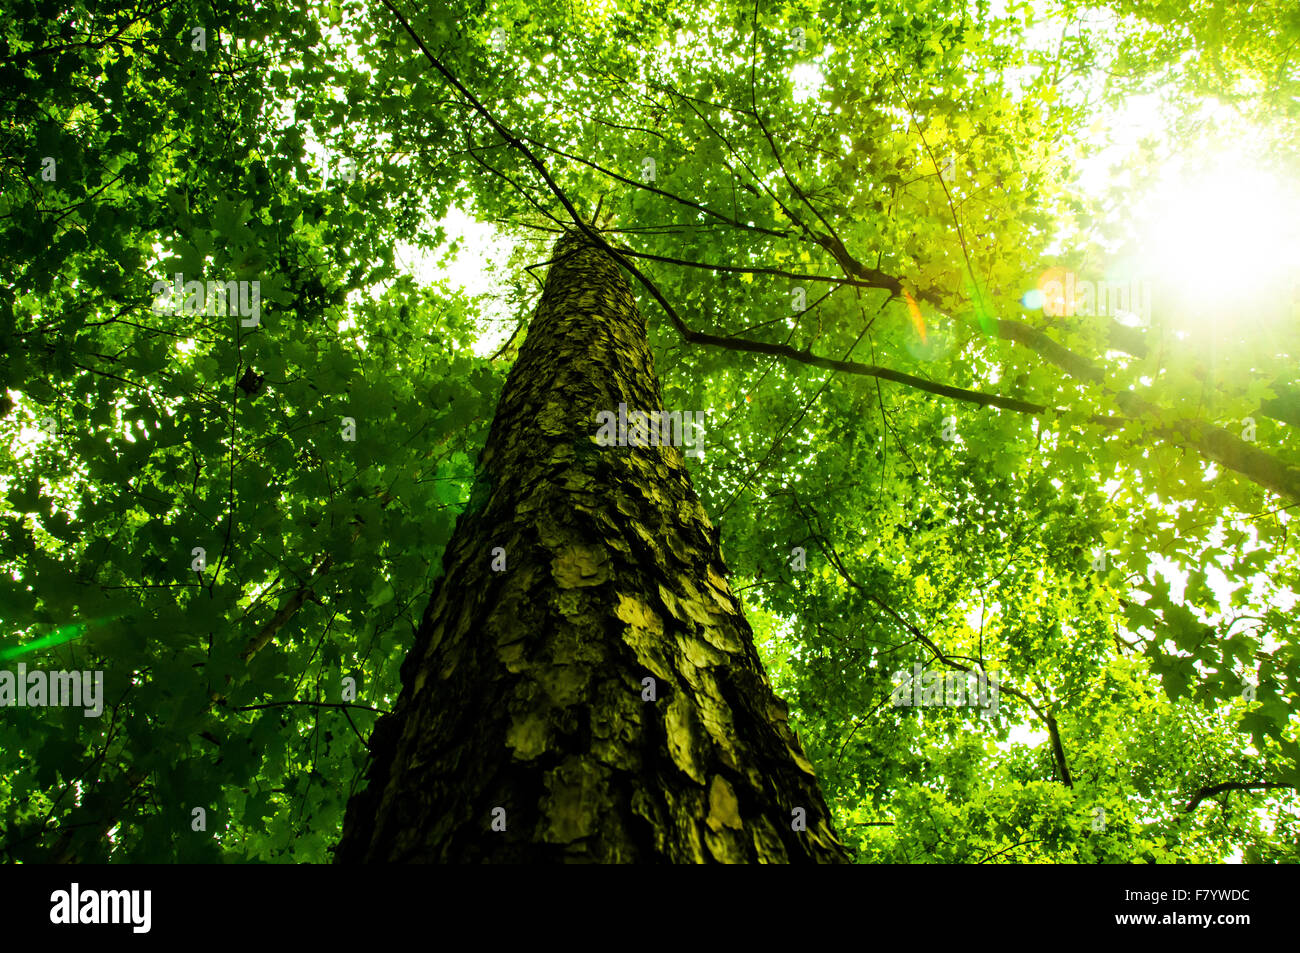 Shot from below looking upward at a tree and through the green leaves, with some sun flare - Stock Image